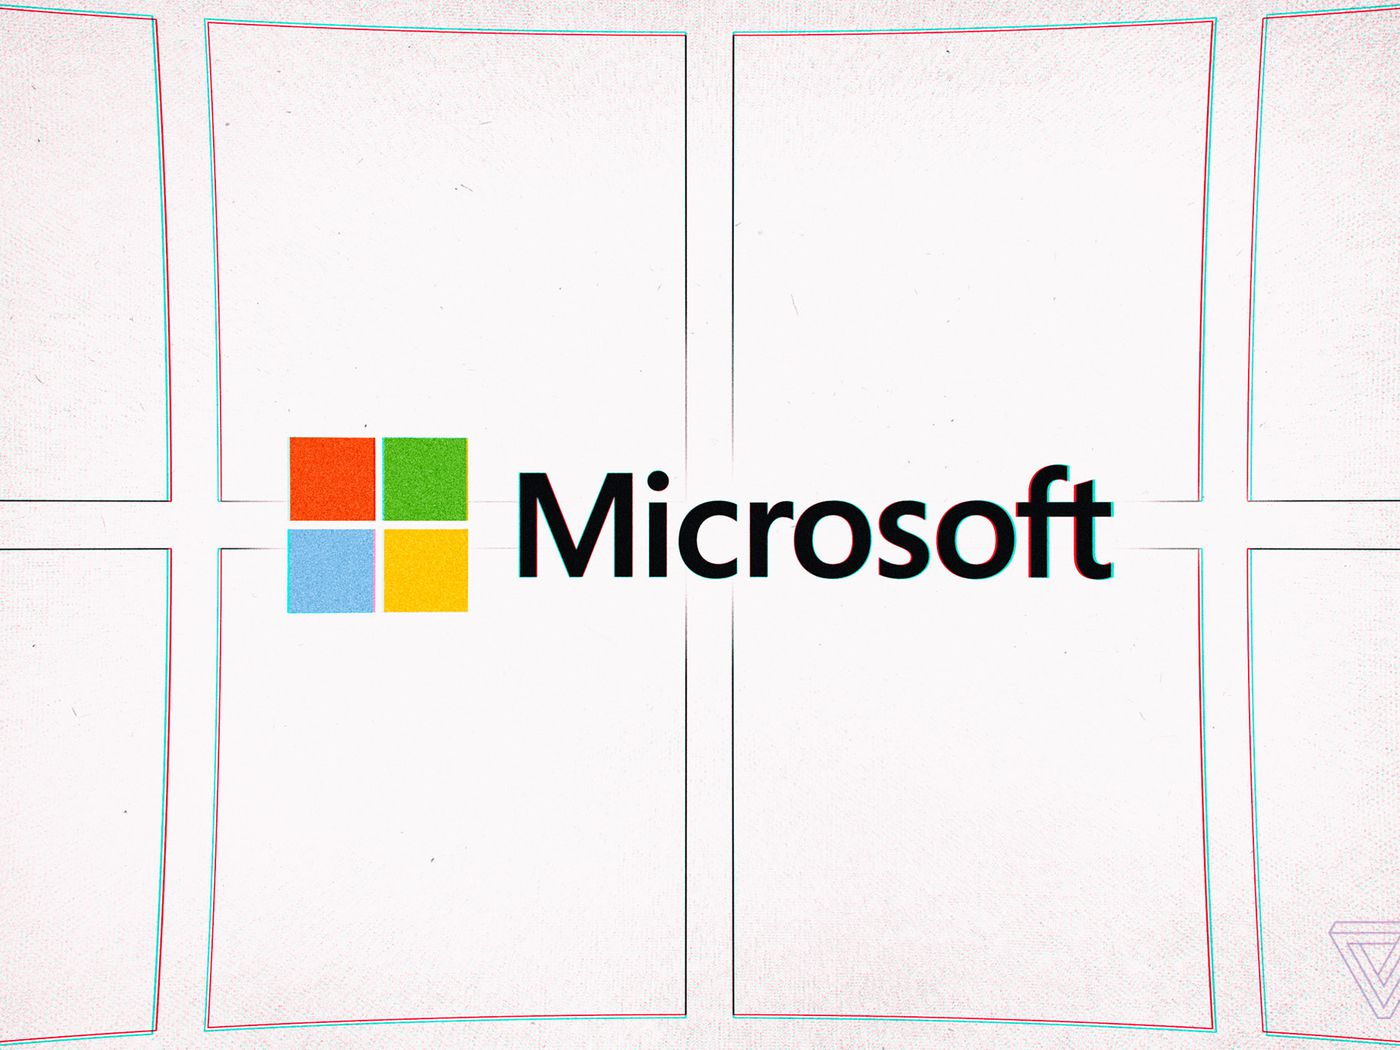 Microsoft Q1 2021 earnings: Surface, Xbox, and cloud boost revenue - The  Verge